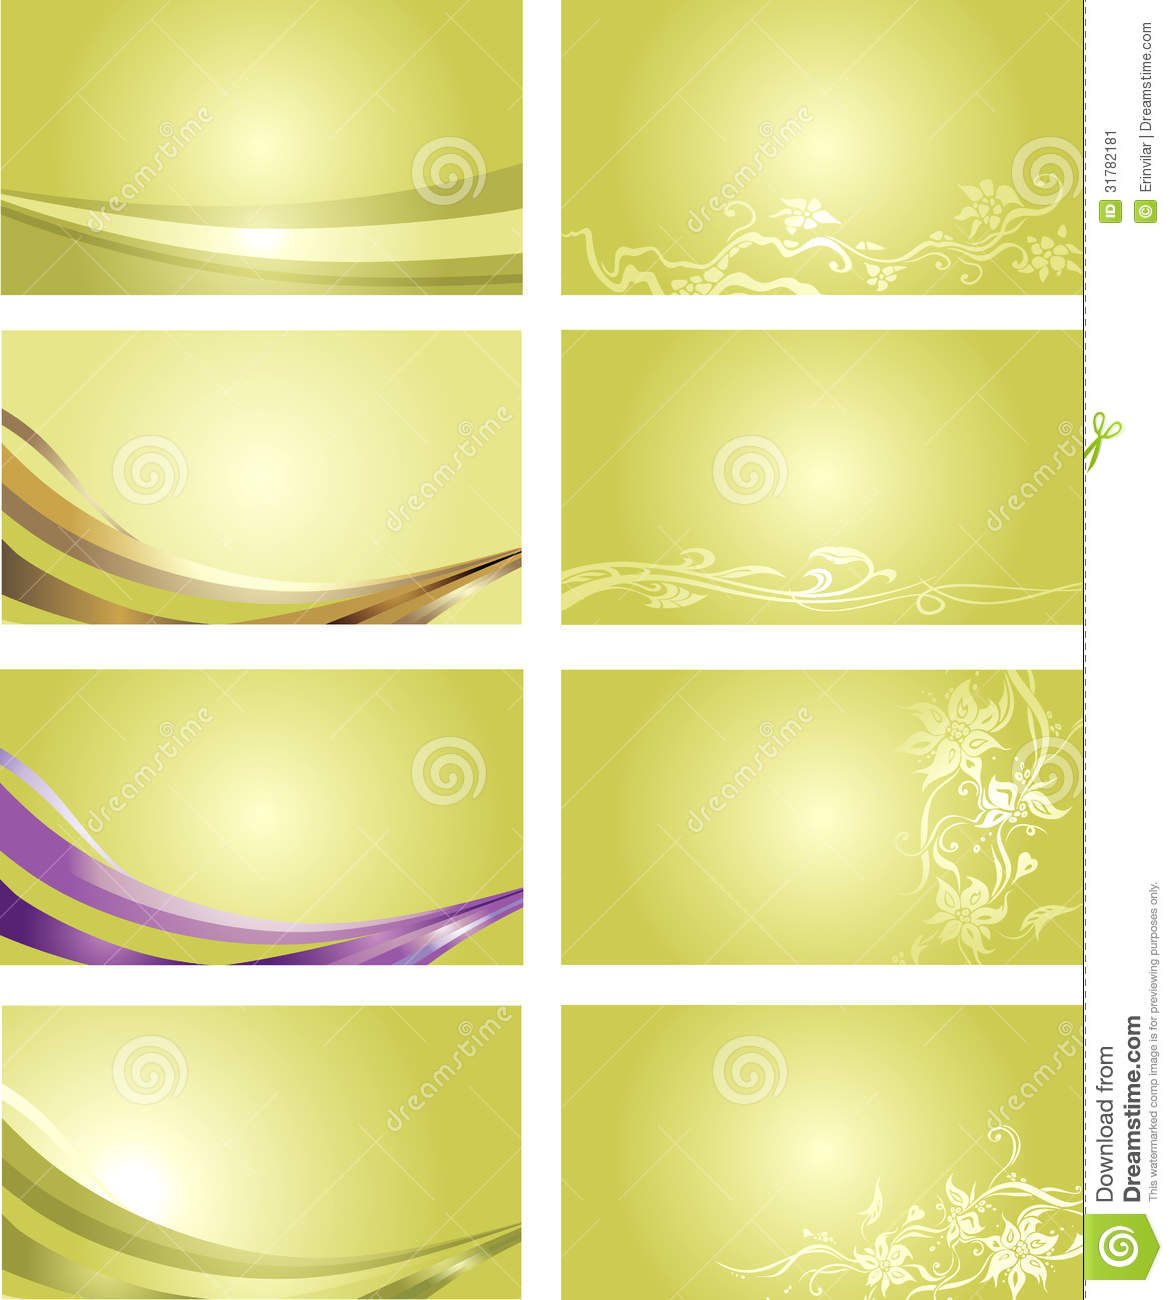 Cards background design vatozozdevelopment cards background design colourmoves